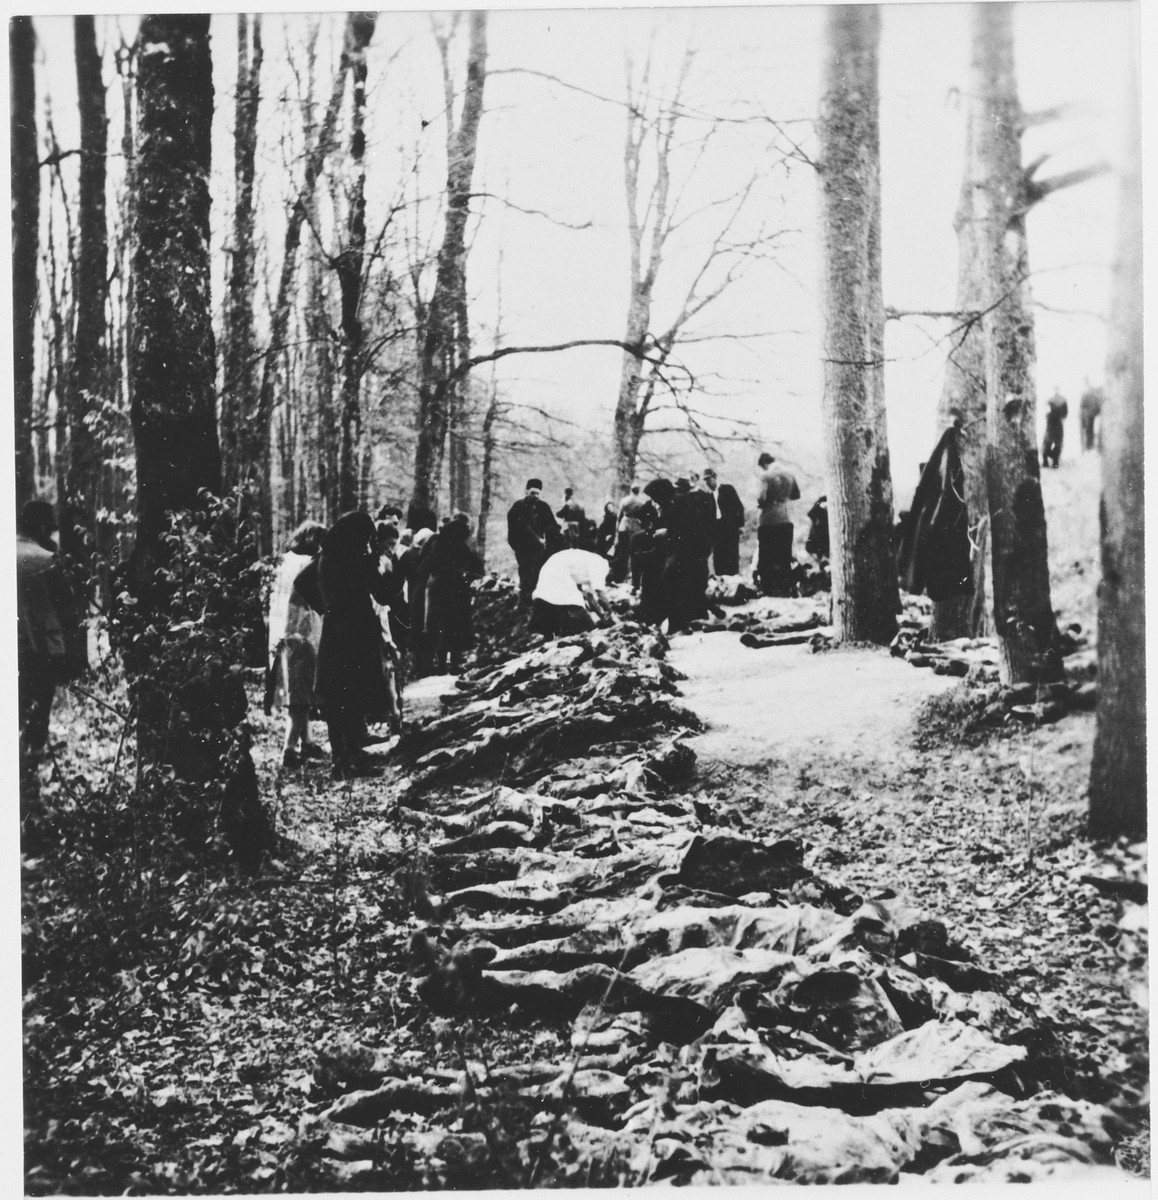 A Yugoslav war crimes investigator (Professor Sh. Premer) examines exhumed bodies in the Uskoci Forest.